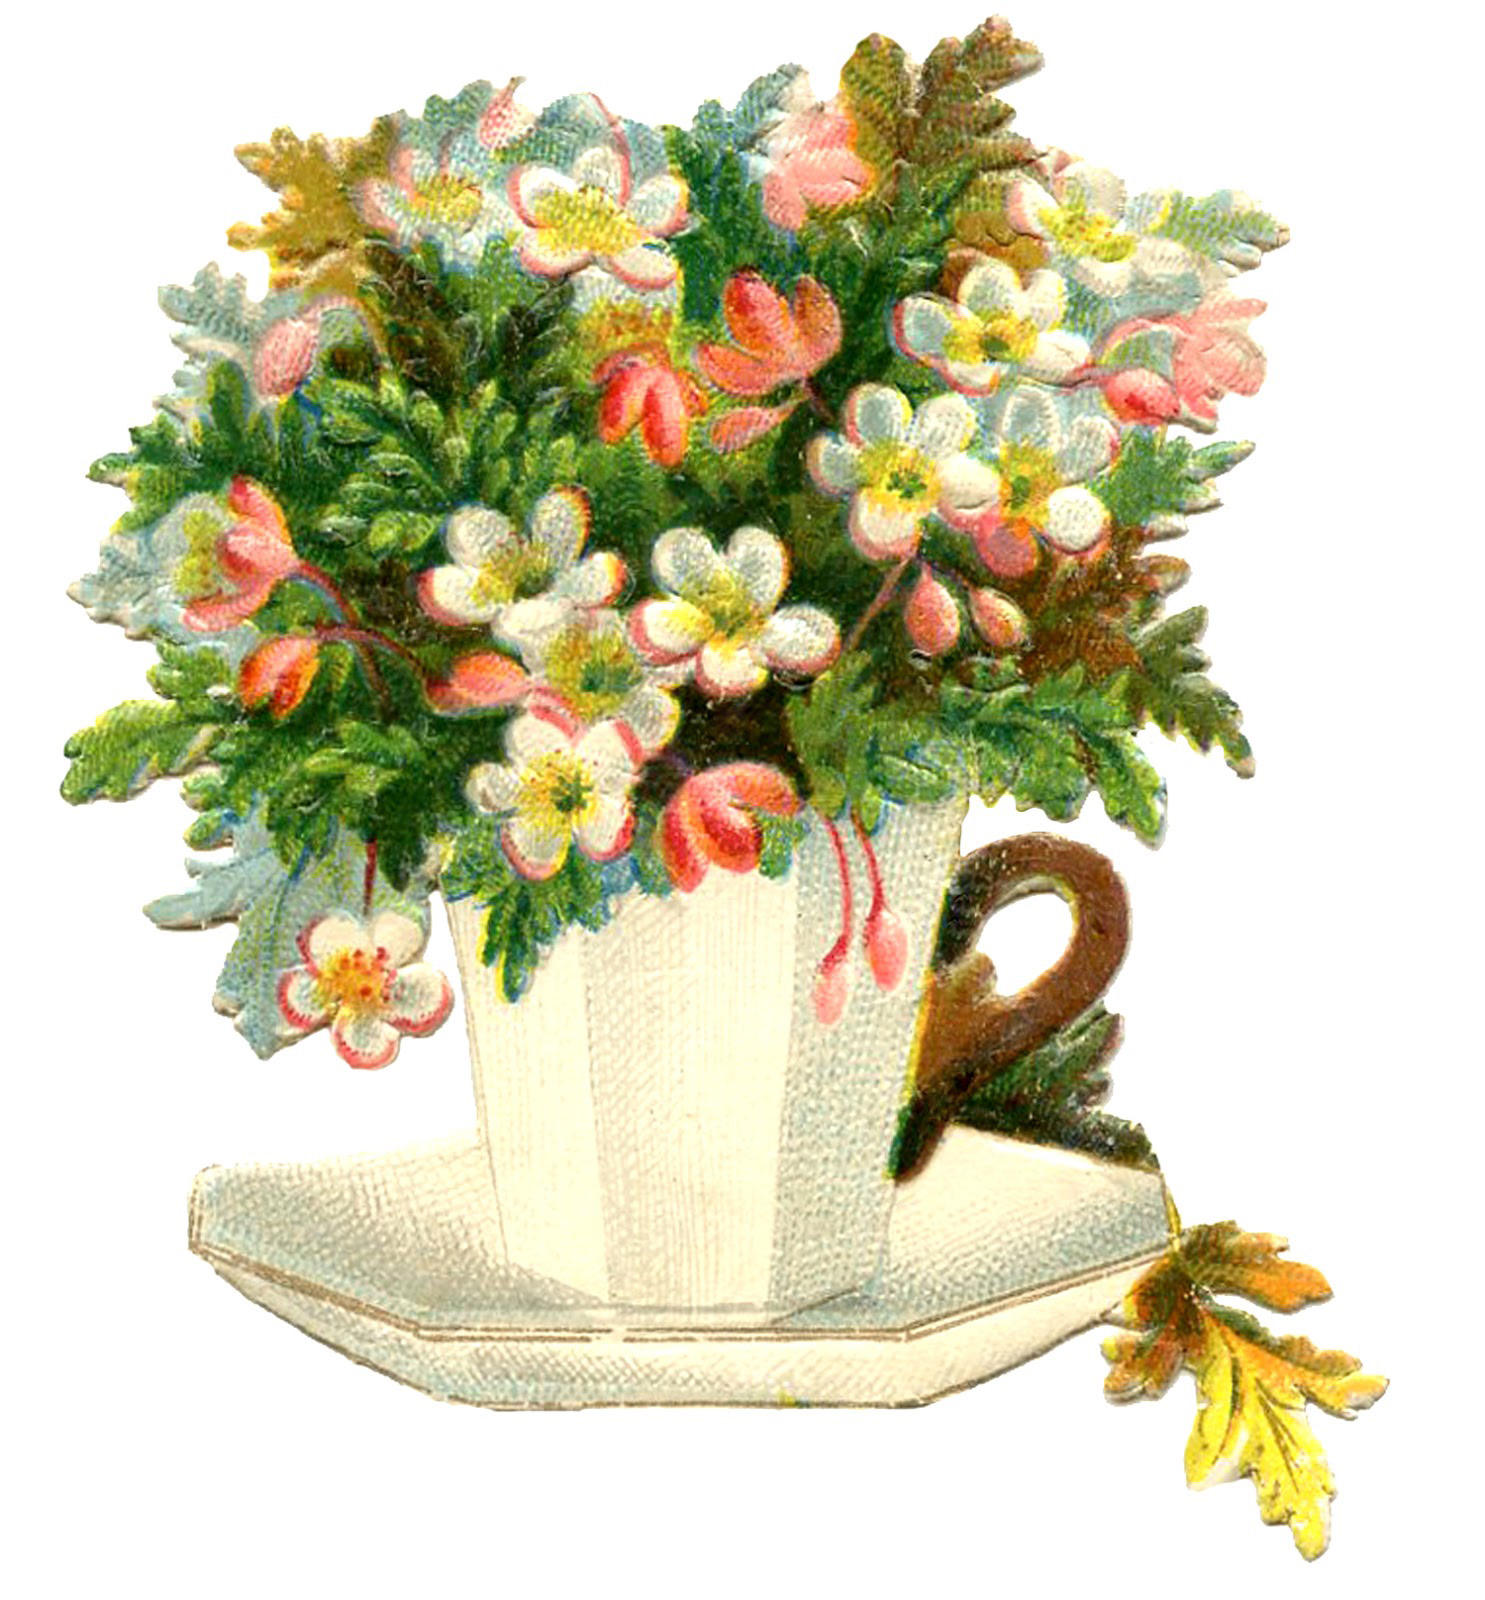 Vintage-Teacup-Image-Floral-GraphicsFairy3